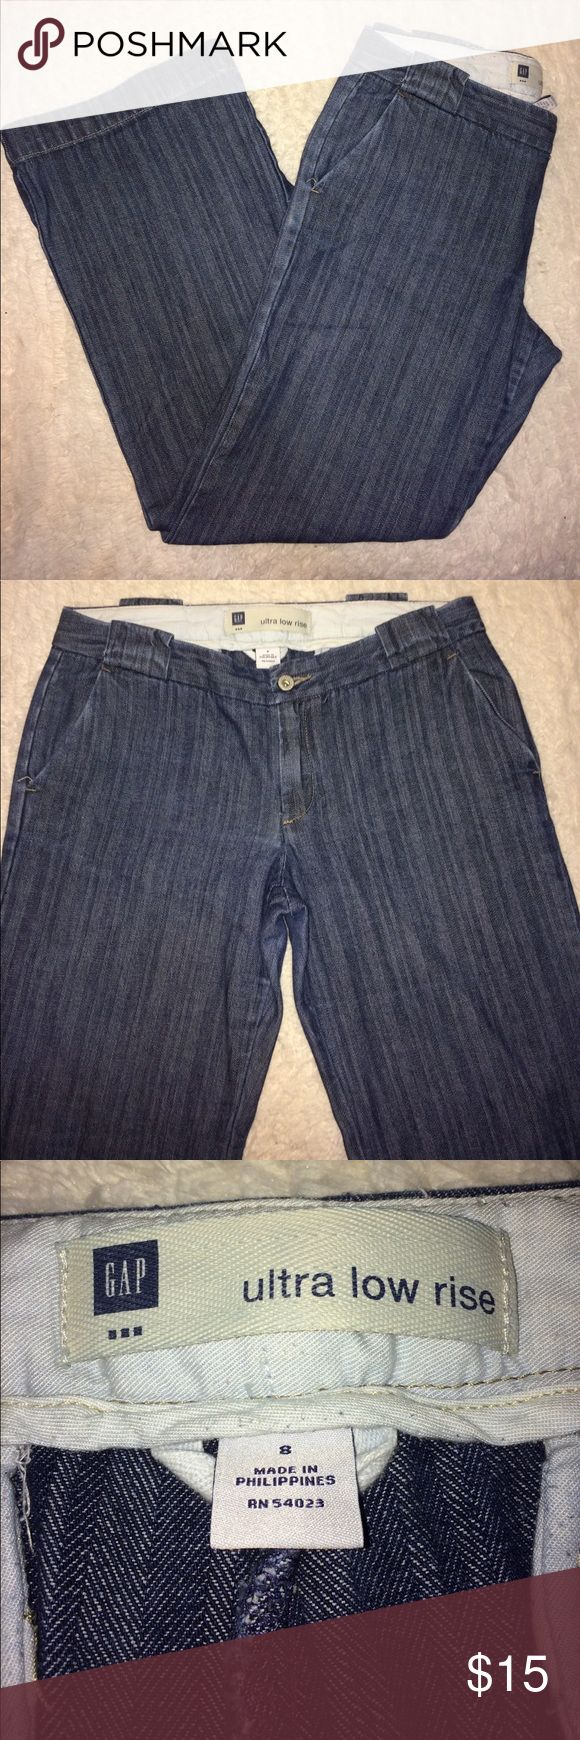 GAP trouser jeans size 8 Gap trouser jeans. Please see photos-missing back button. Size 8. Waist lying flat measures approximately 18 inches and has an inseam of 31.5 inches. Very cute and can be dressed up or down. Ultra low rise fit. GAP Jeans Flare & Wide Leg